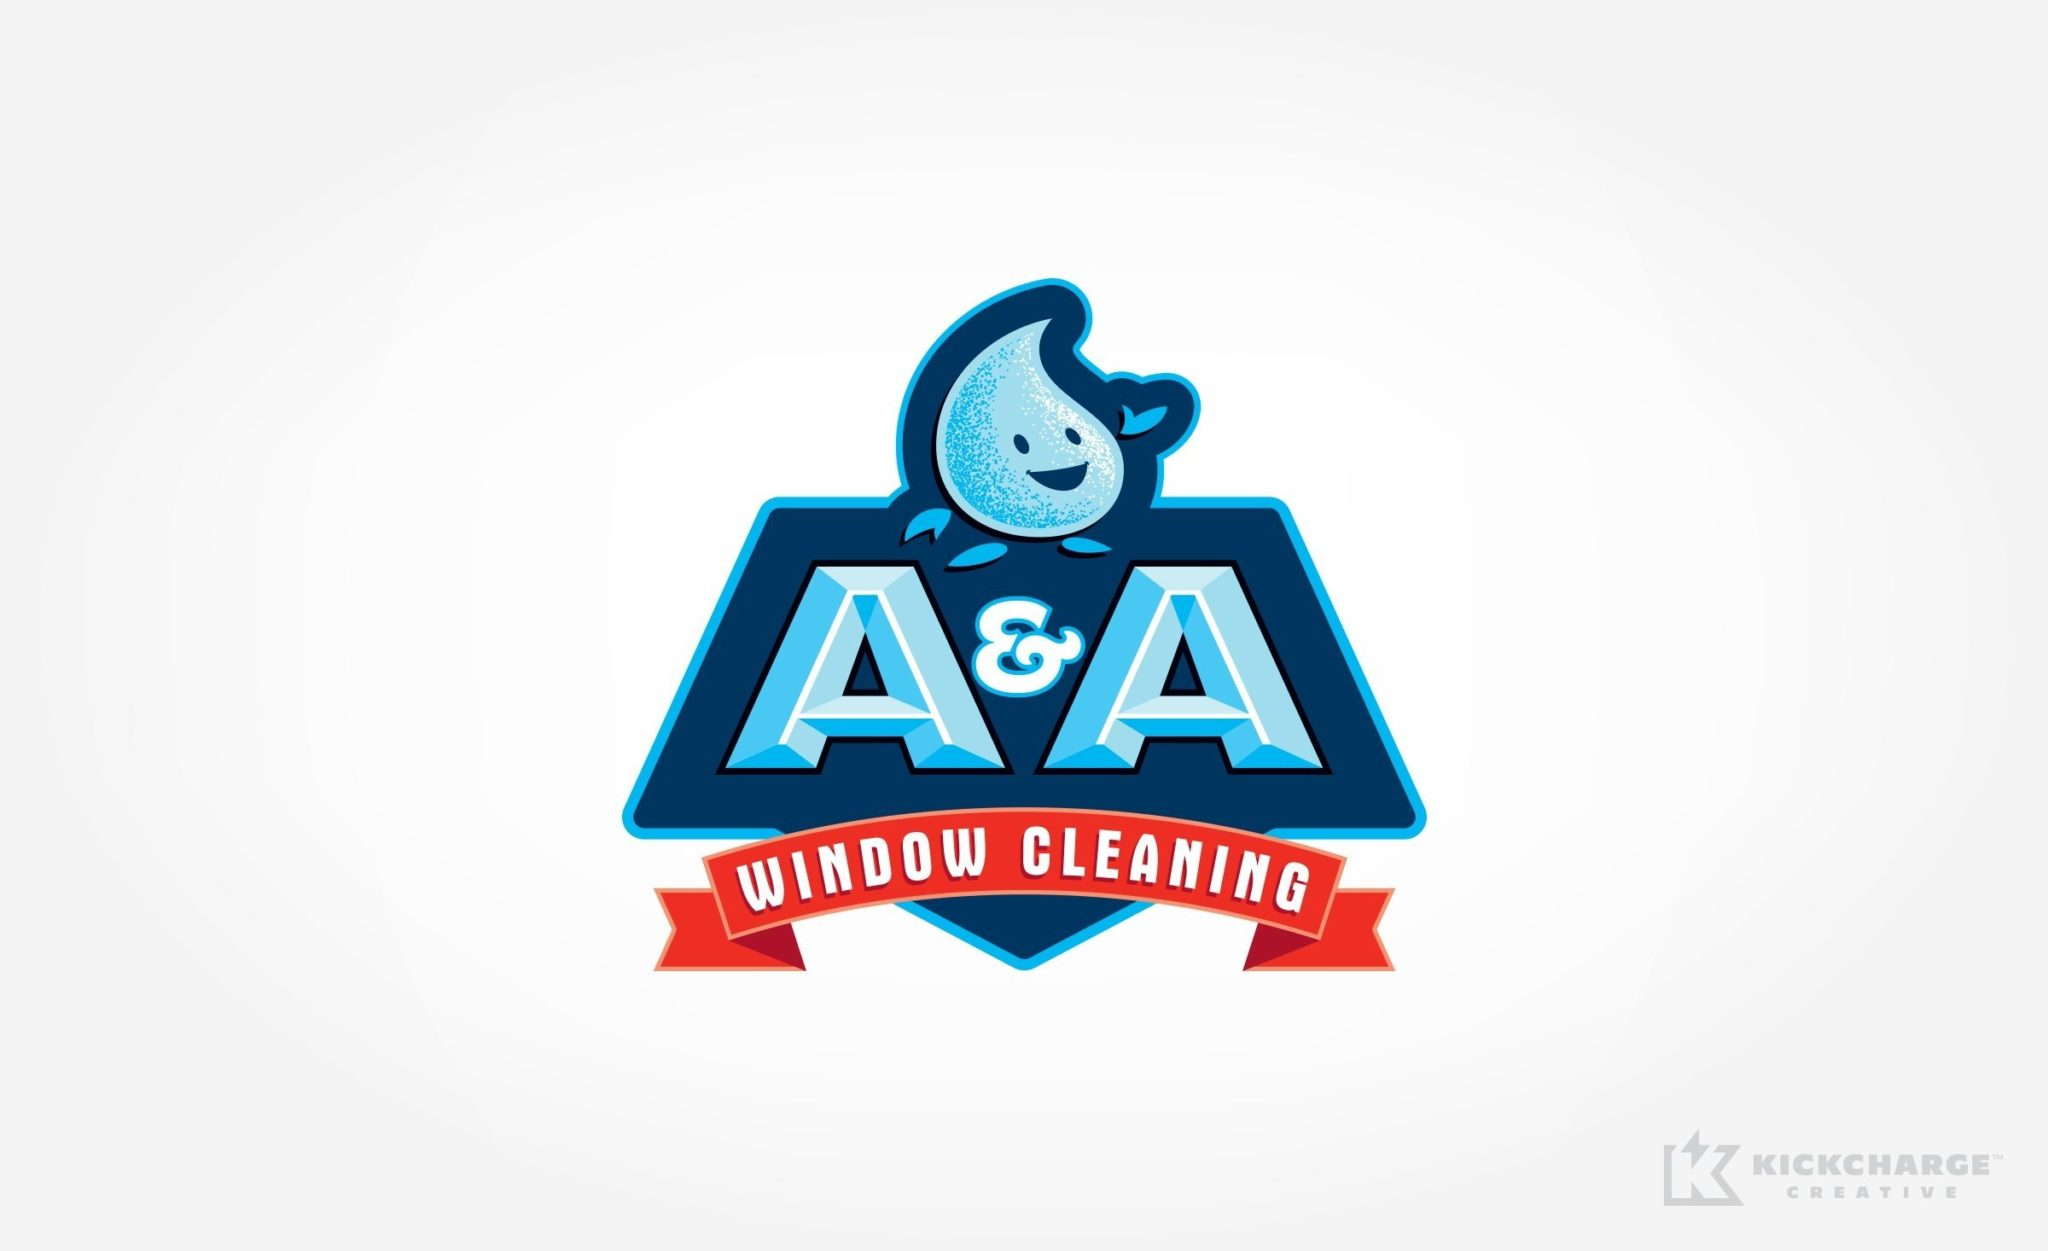 A&A Window Cleaning